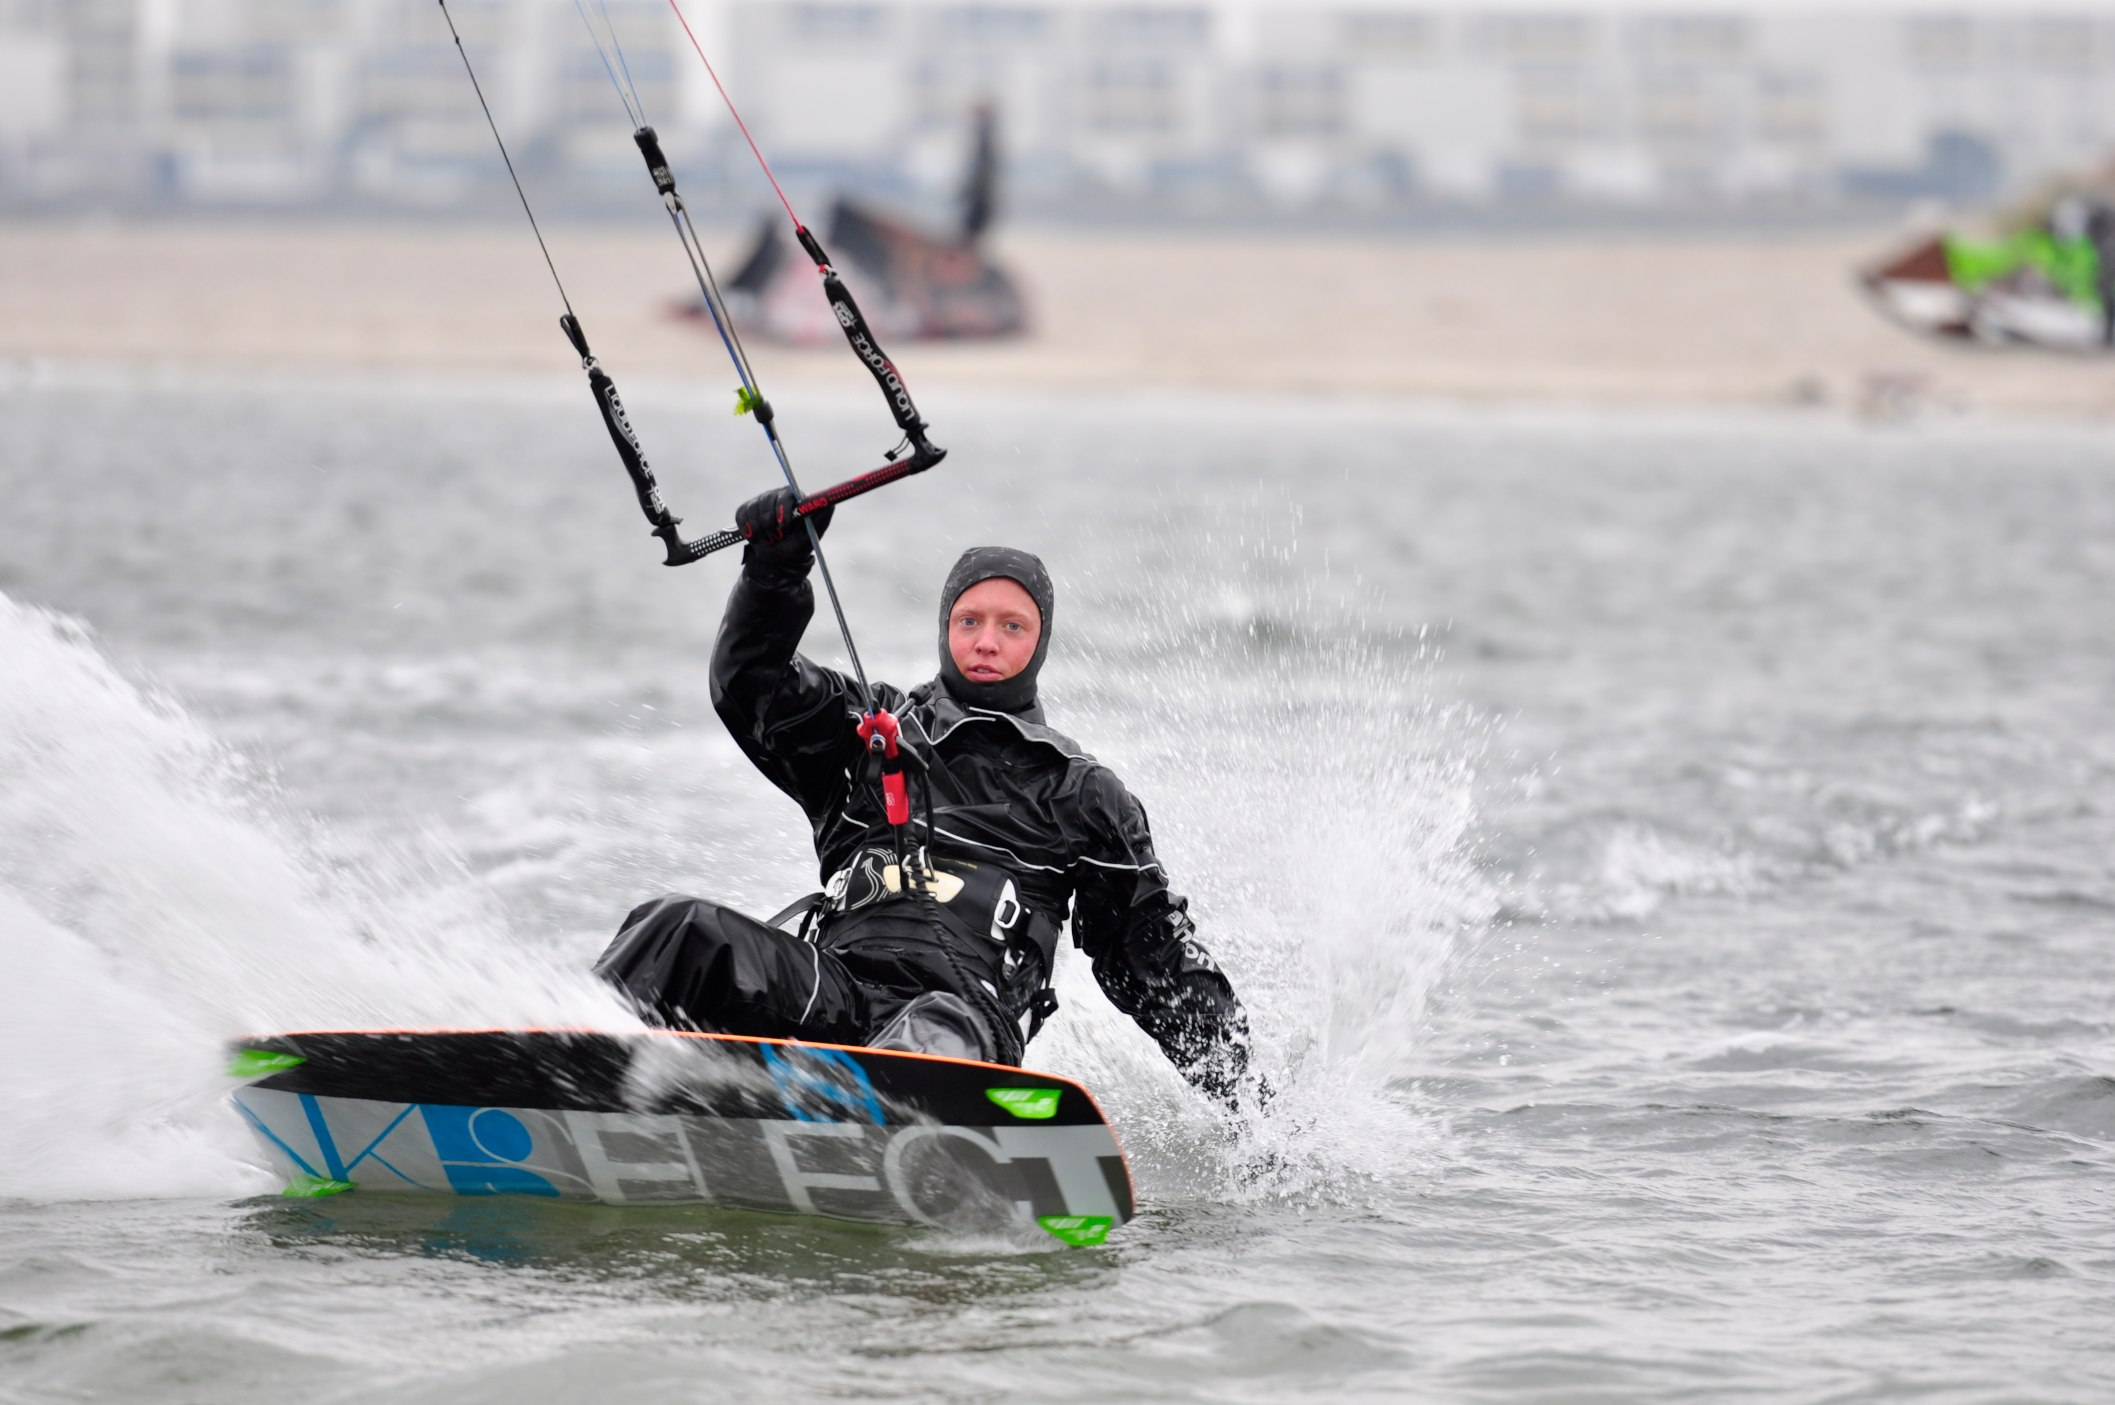 Kite Surfer Paradies Fehmarn